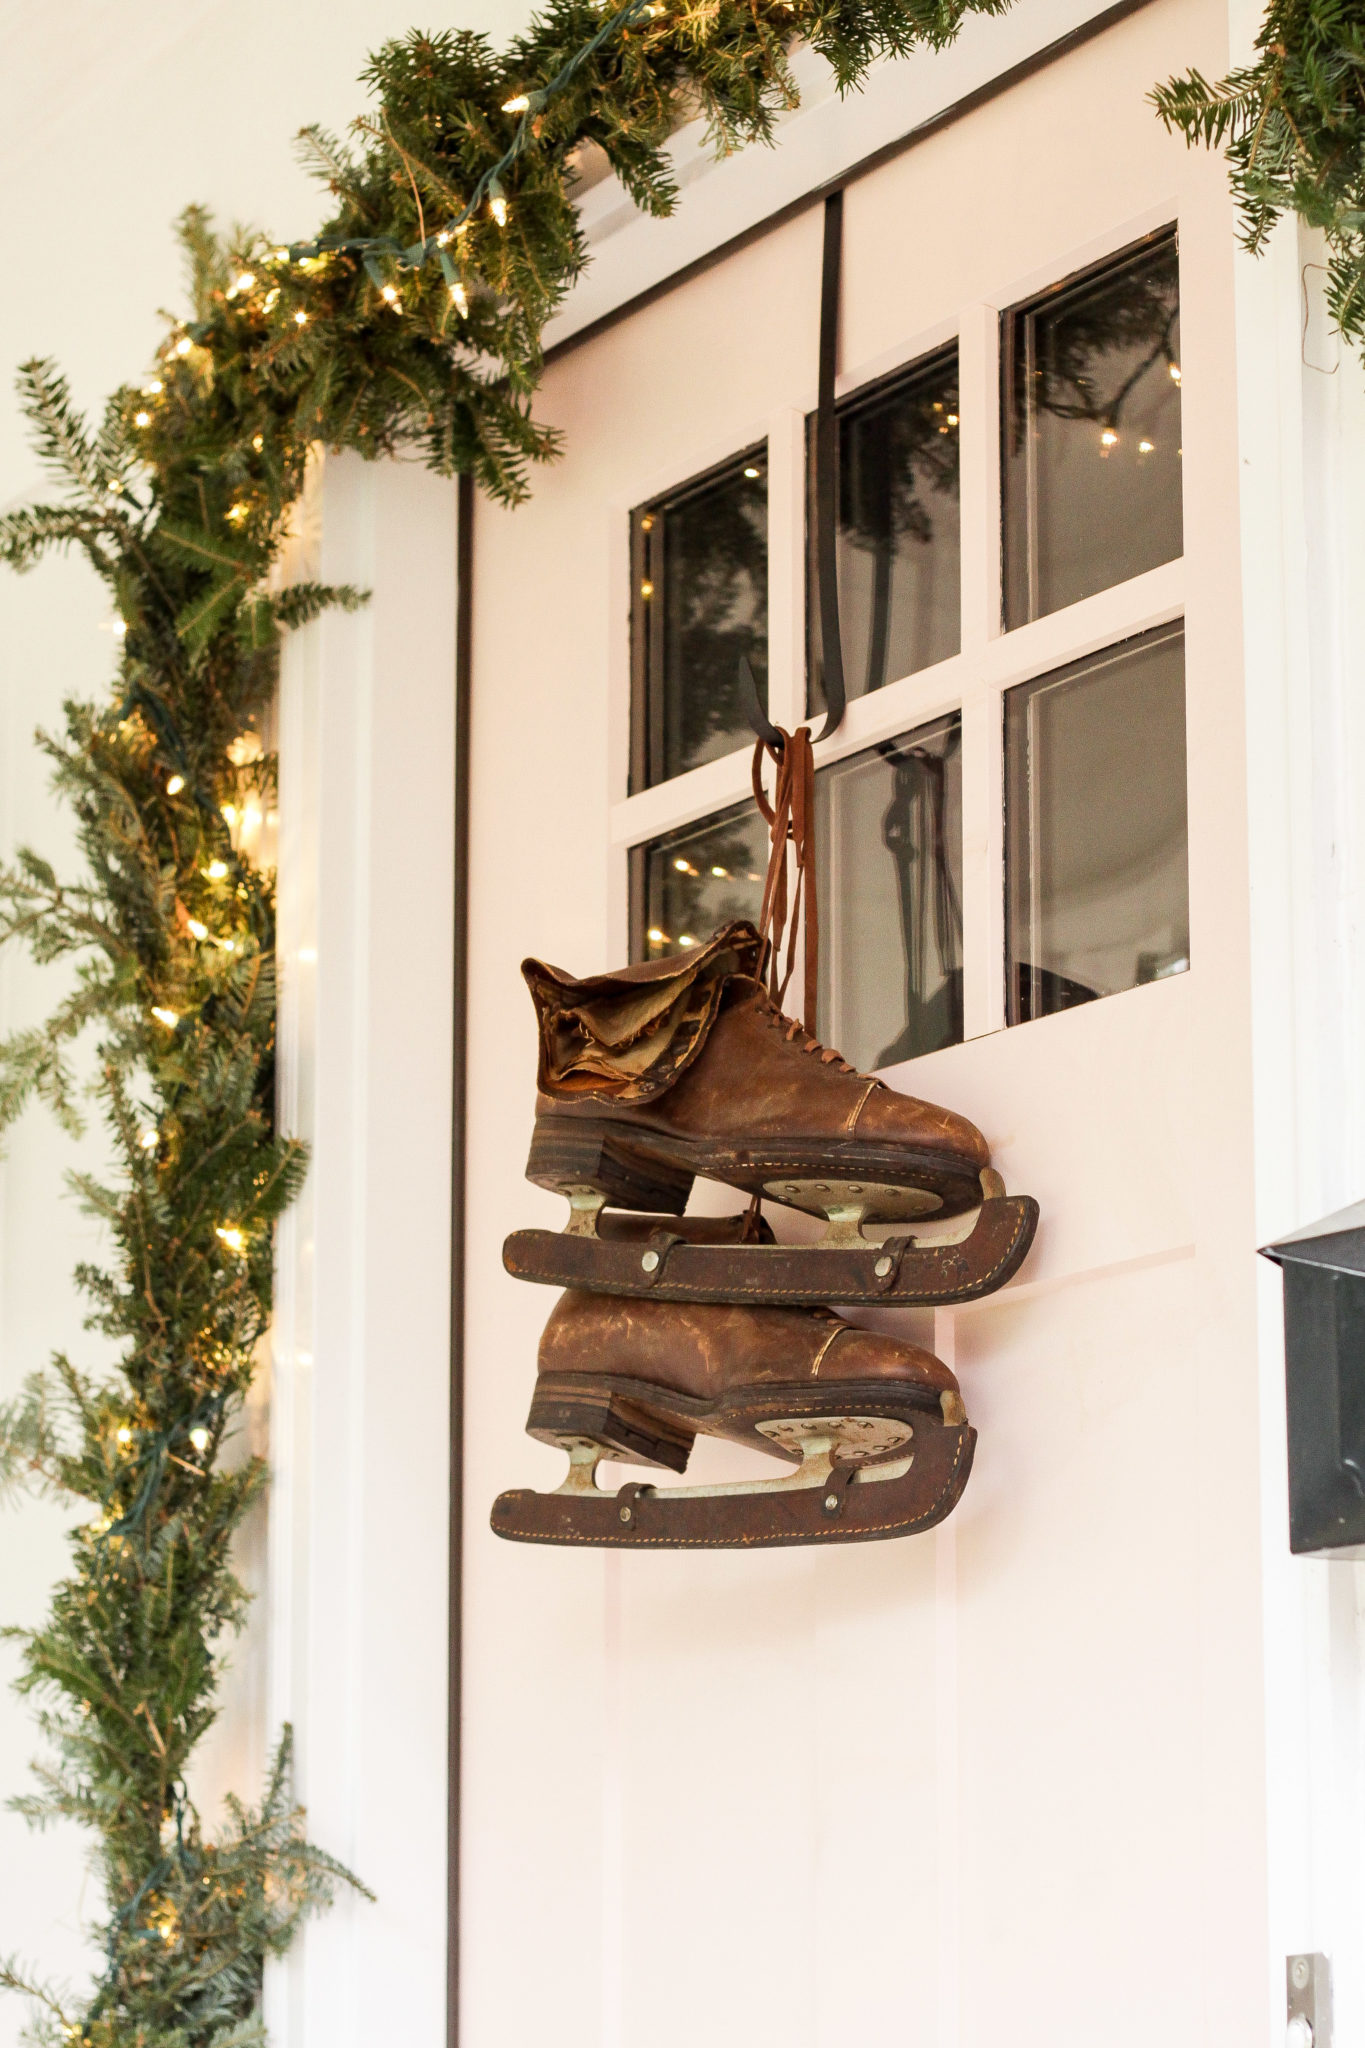 Festive Christmas Decorating Ideas - love these antique ice skates instead of a wreath #vintagechristmas #iceskates #christmaswreath #christmasdecor